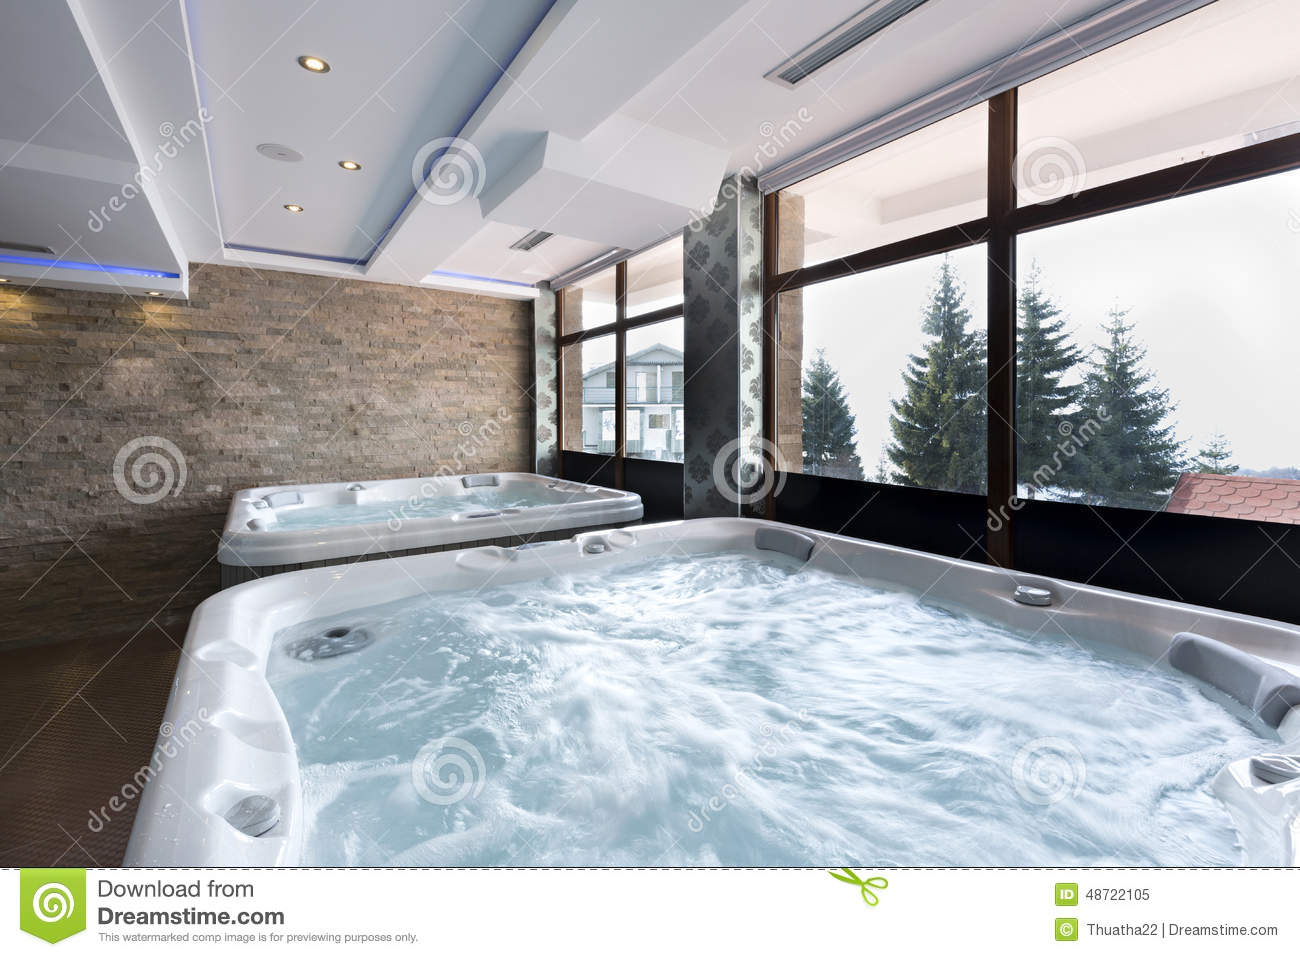 Jacuzzi Baths In Hotel Spa Center Stock Image - Image of healthy ...